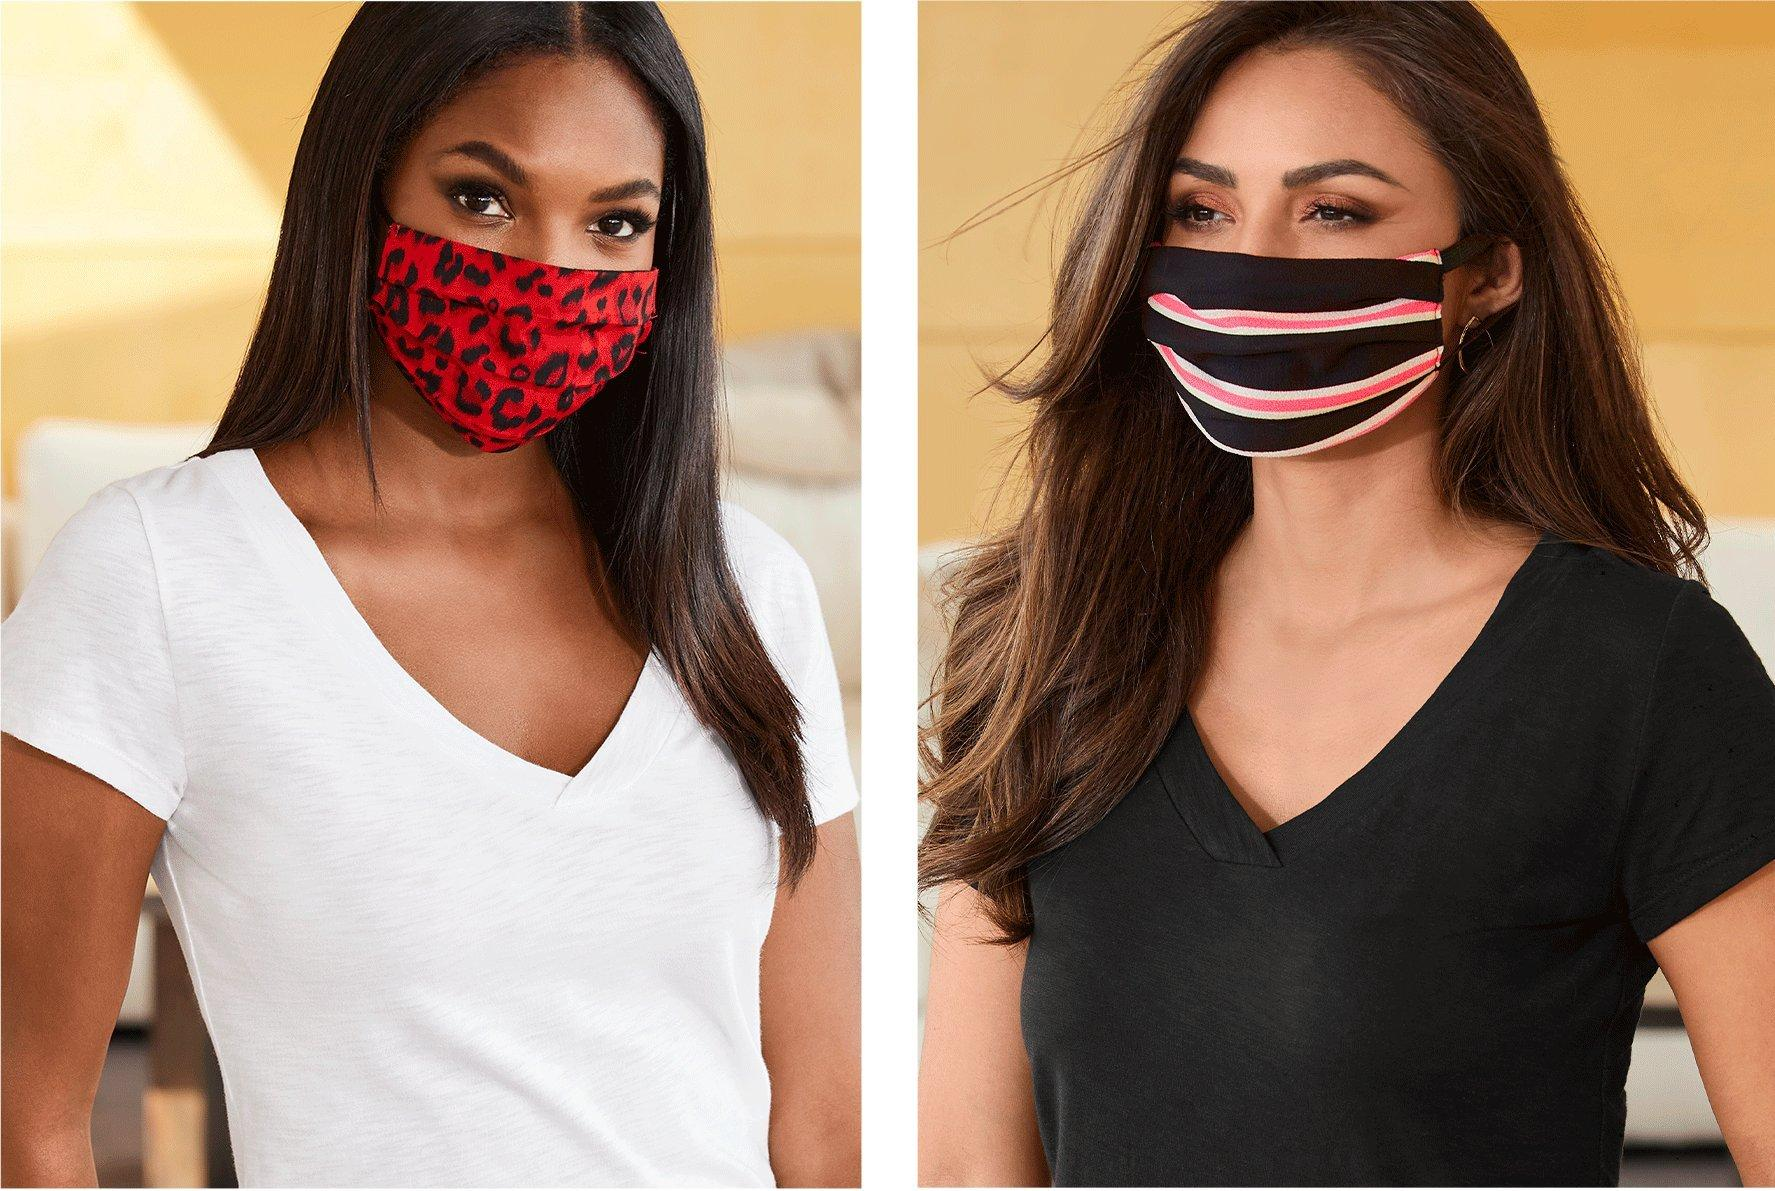 left model wearing a red and black leopard print face mask and white v-neck tee. right model wearing a pink, black, and white striped face mask with a black v-neck tee.